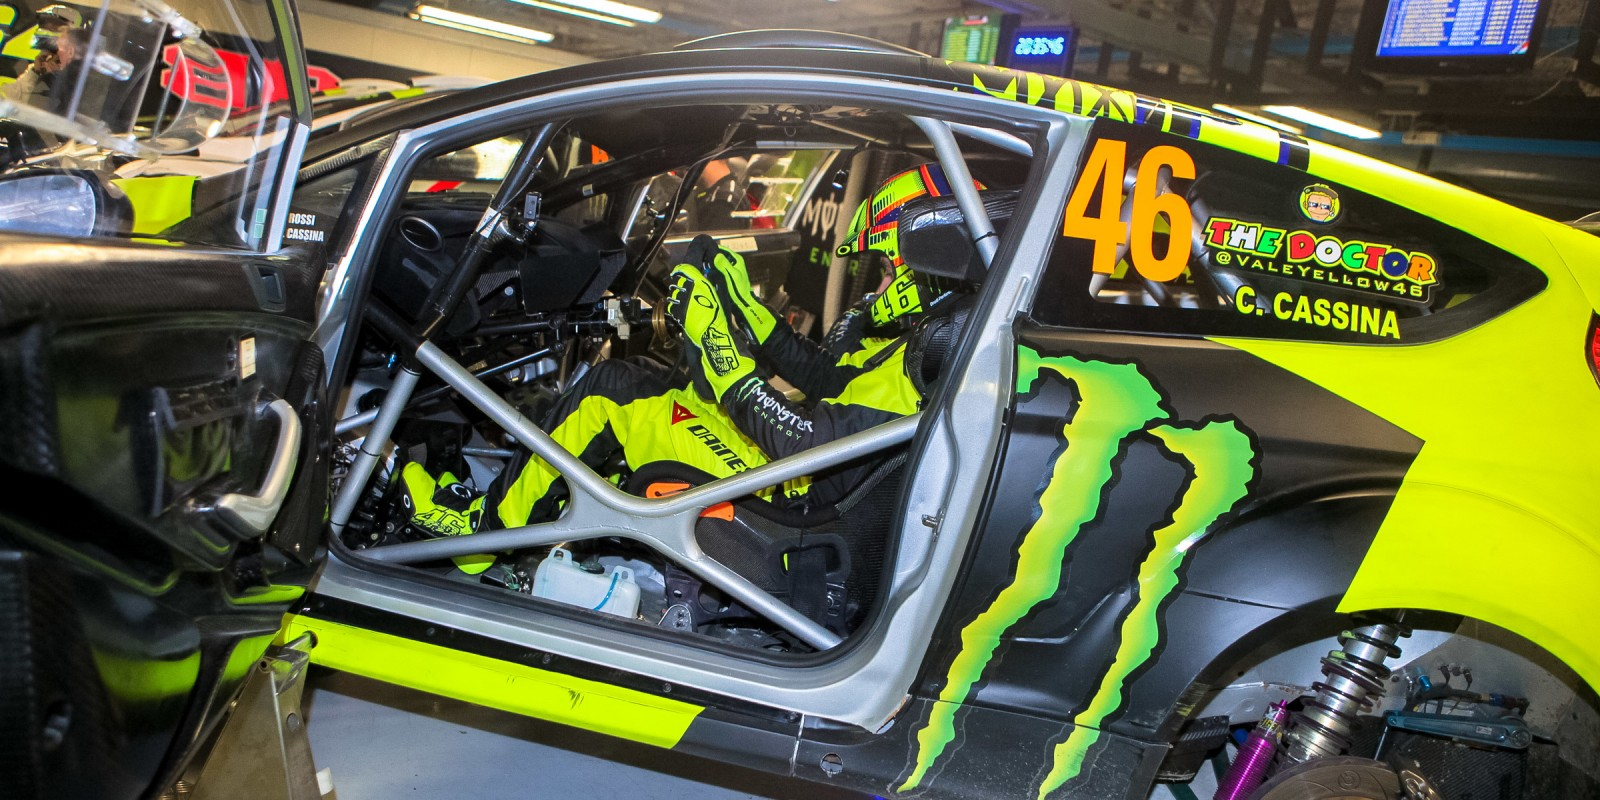 Vale inside the car and ready to go!